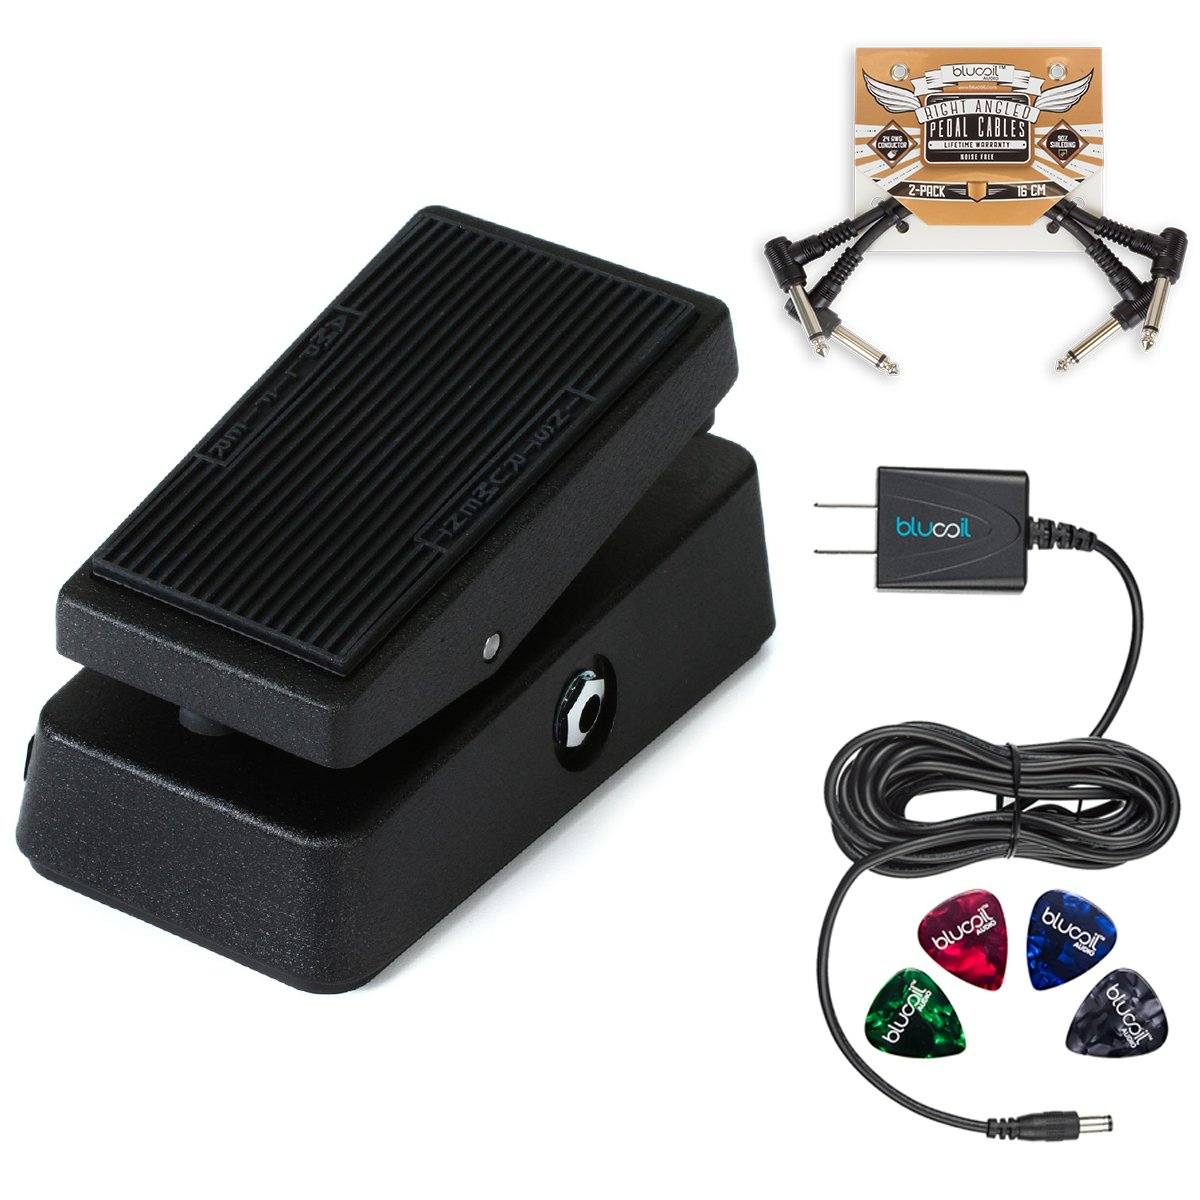 Jim Dunlop Cbm95 Cry Baby Mini Wah Pedal Bundle With Blucoil Slim 9v